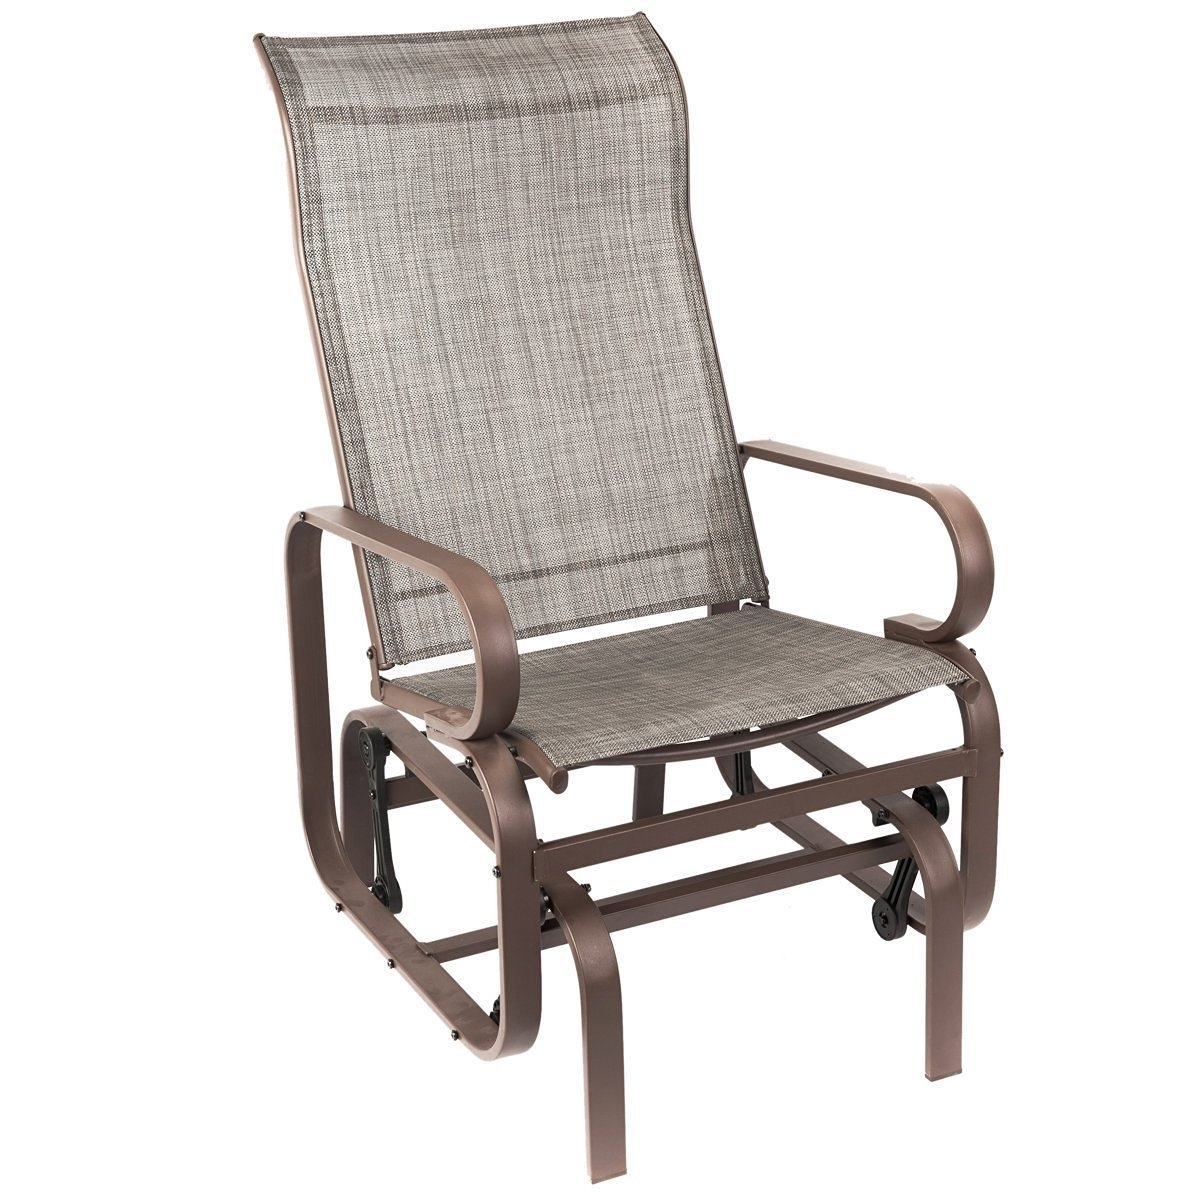 Rocking Chairs For Outside Pertaining To Newest Livingroom : Bradley White Slat Patio Rocking Chair 200sw Rta The (View 6 of 20)